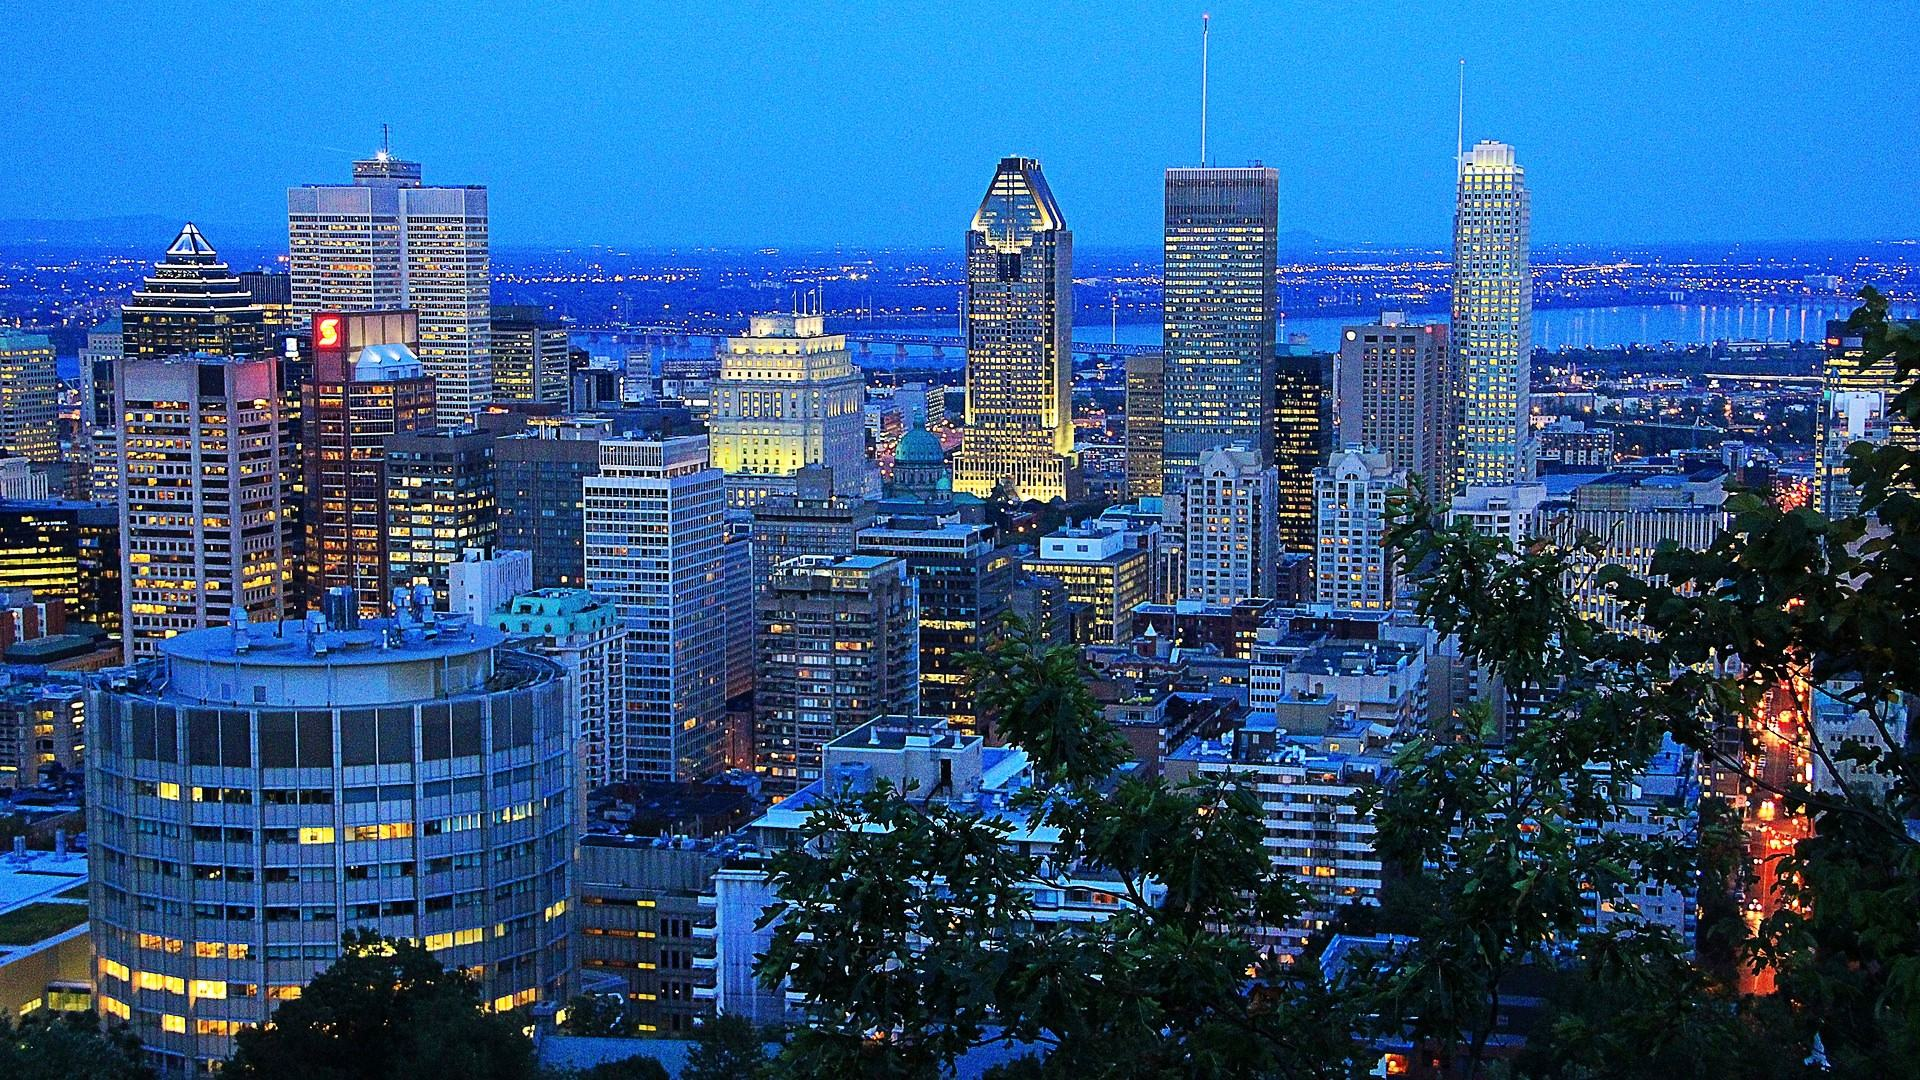 Download Wallpaper   Montreal Night Canada wallpapers 1920x1080